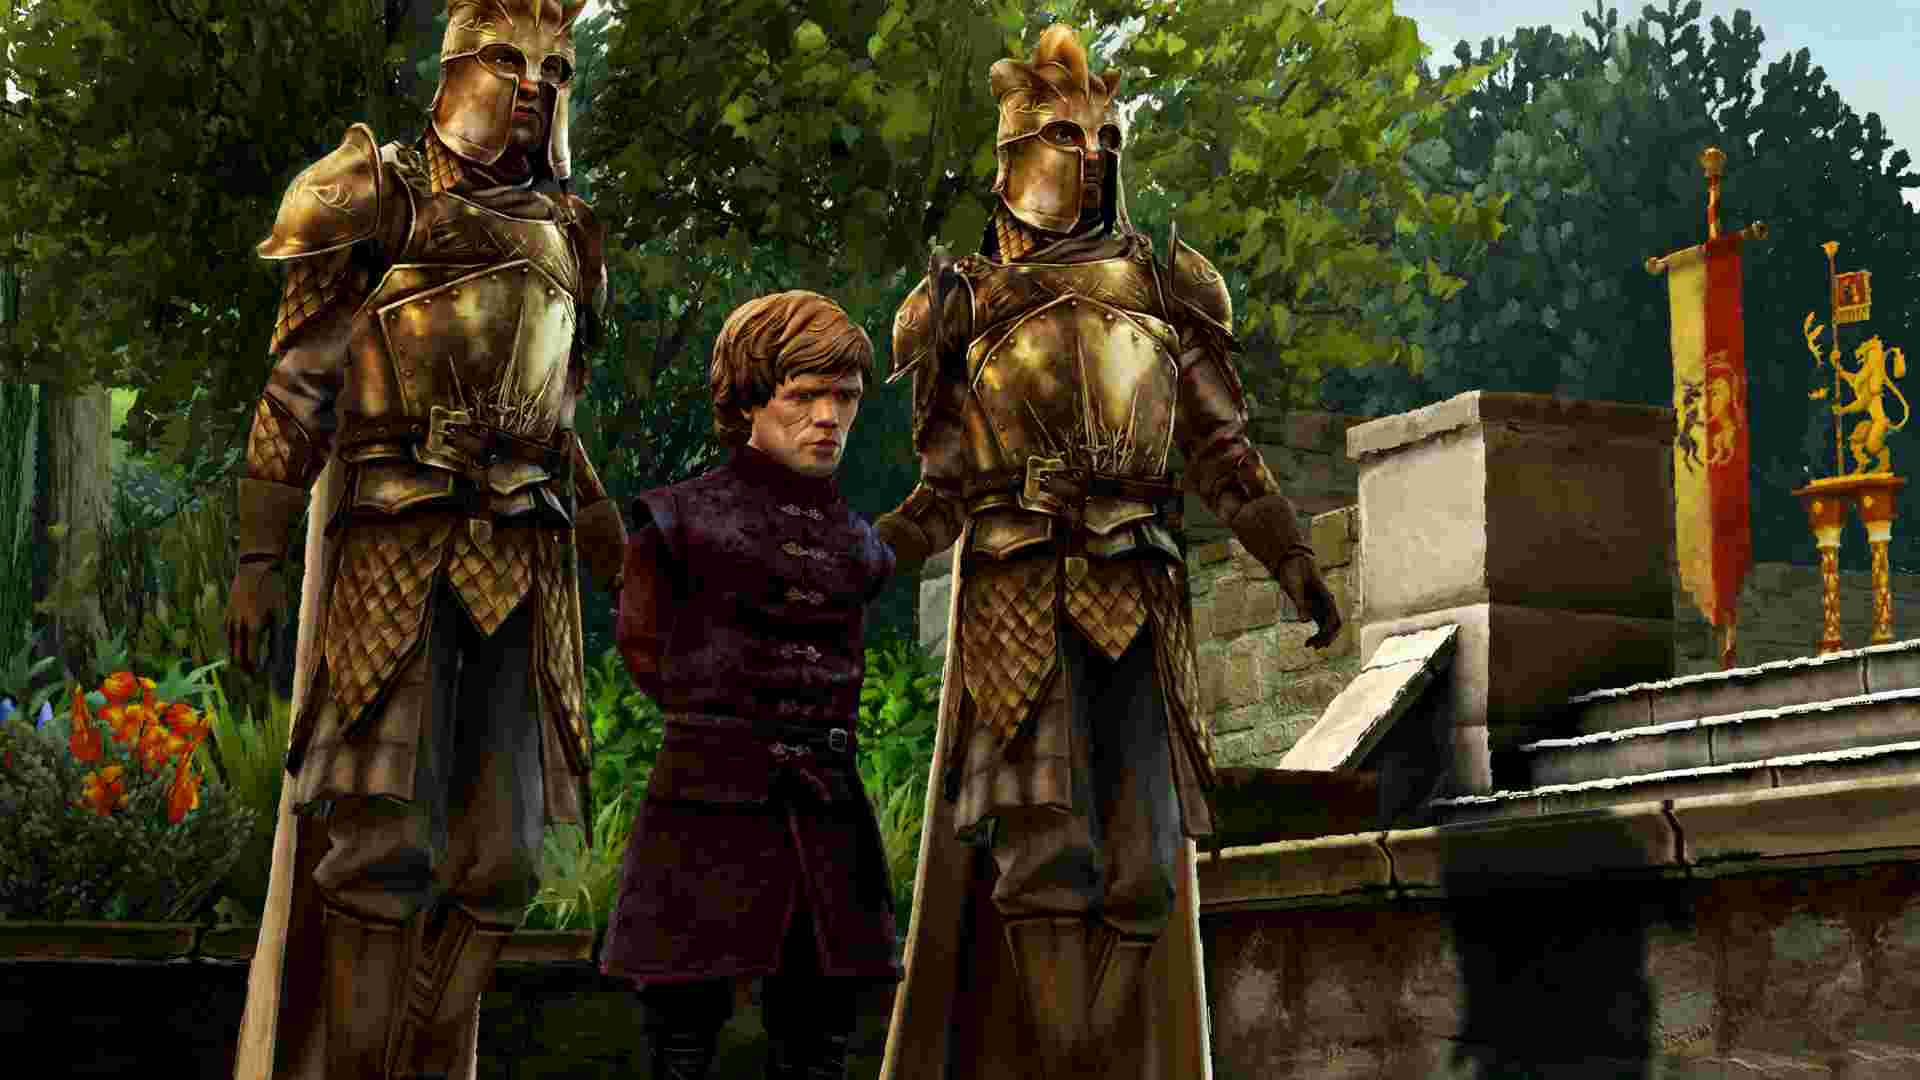 telltale-game-of-thrones-episode-3-tyrion-arrest_1920.0